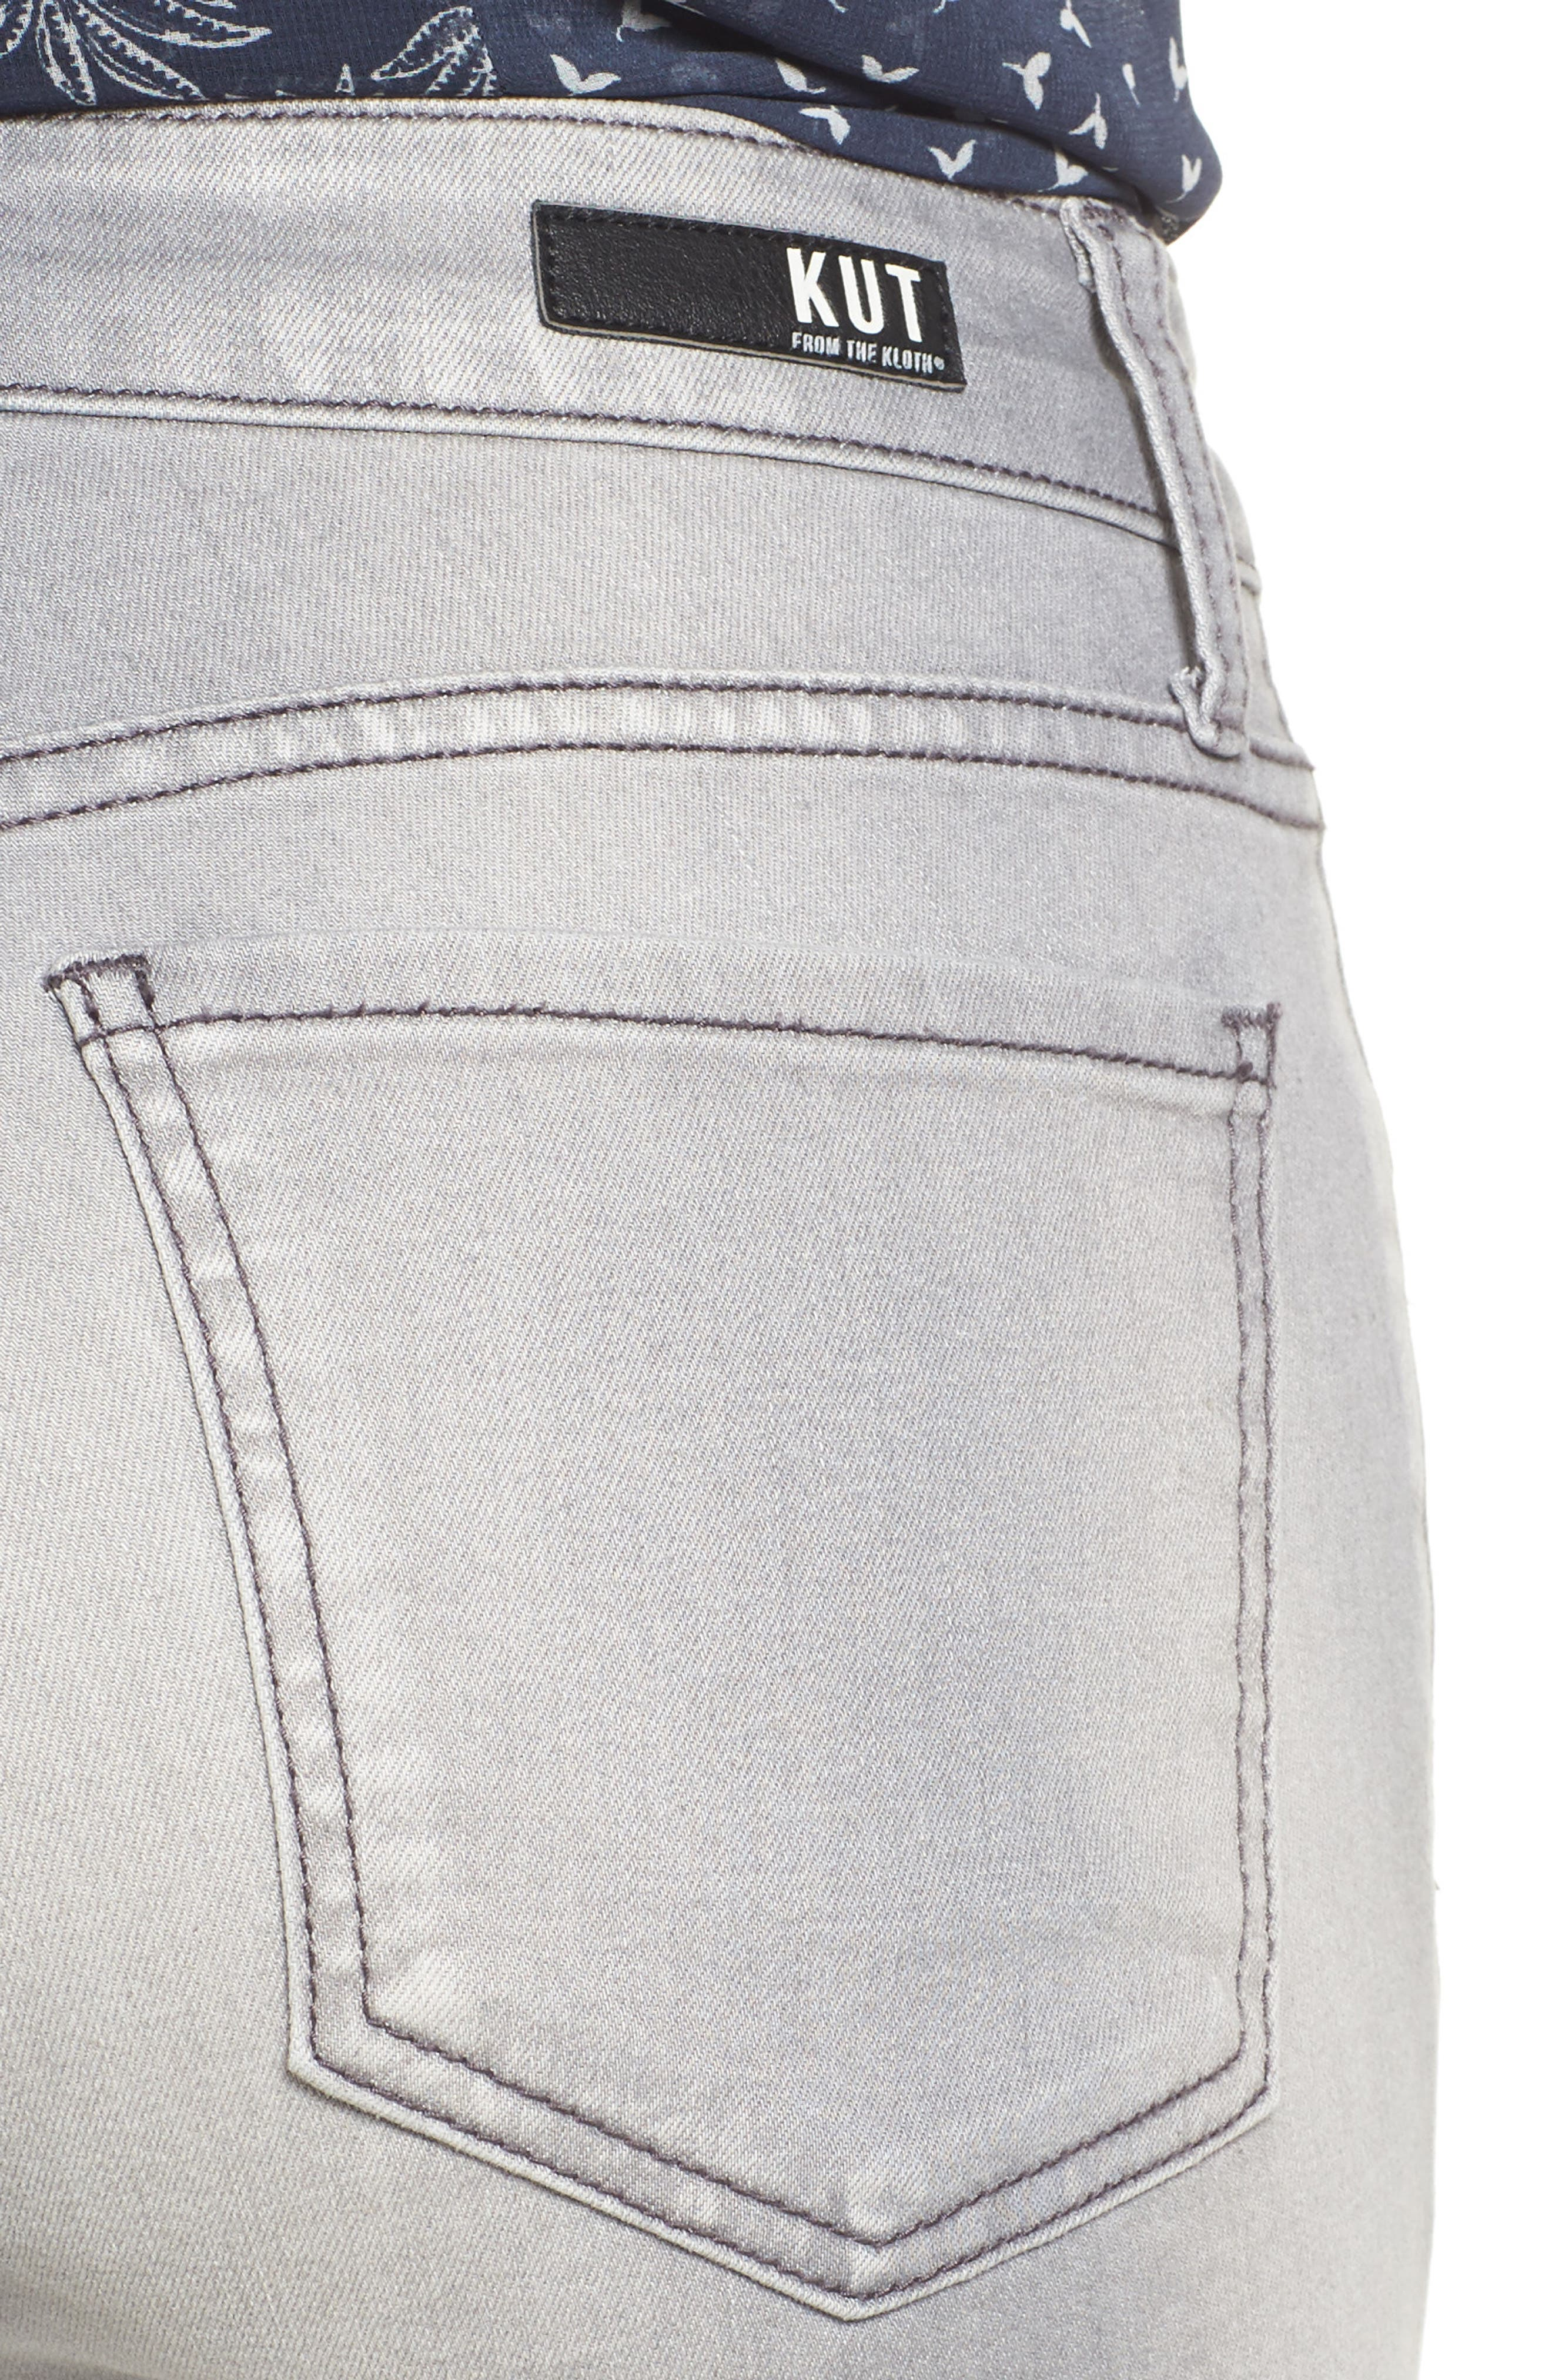 Mia Skinny Jeans,                             Alternate thumbnail 4, color,